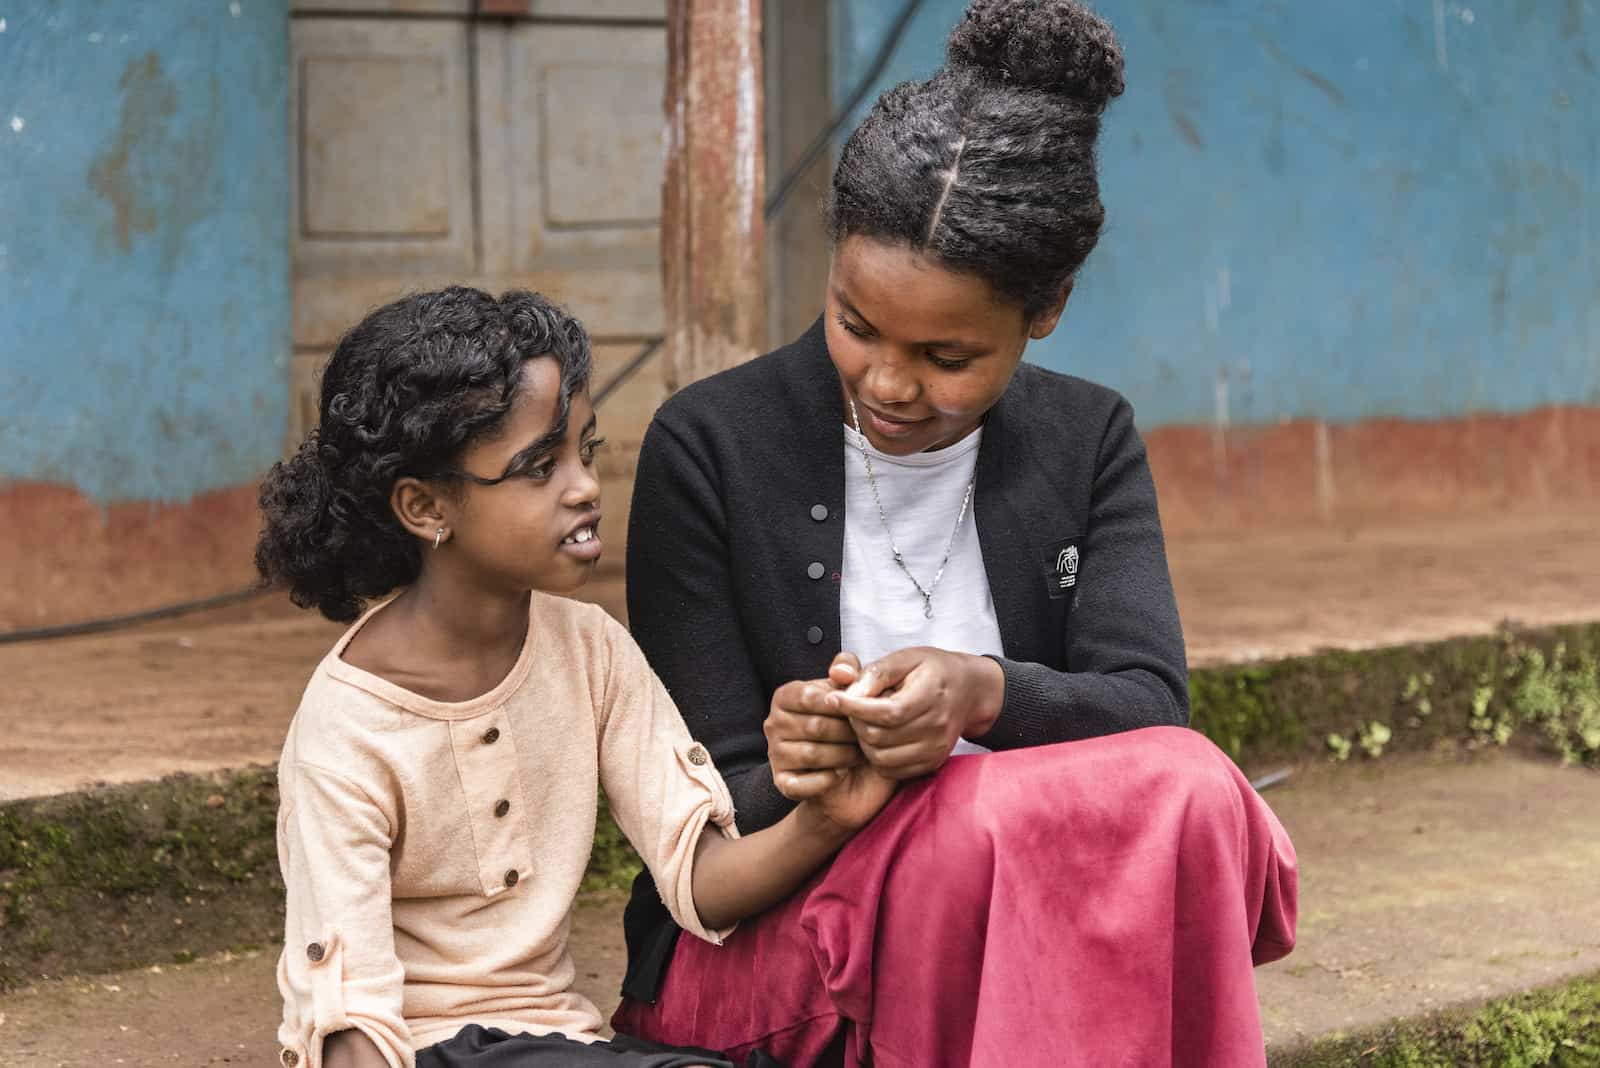 A young woman sits next to a girl, holding her hand and talking.